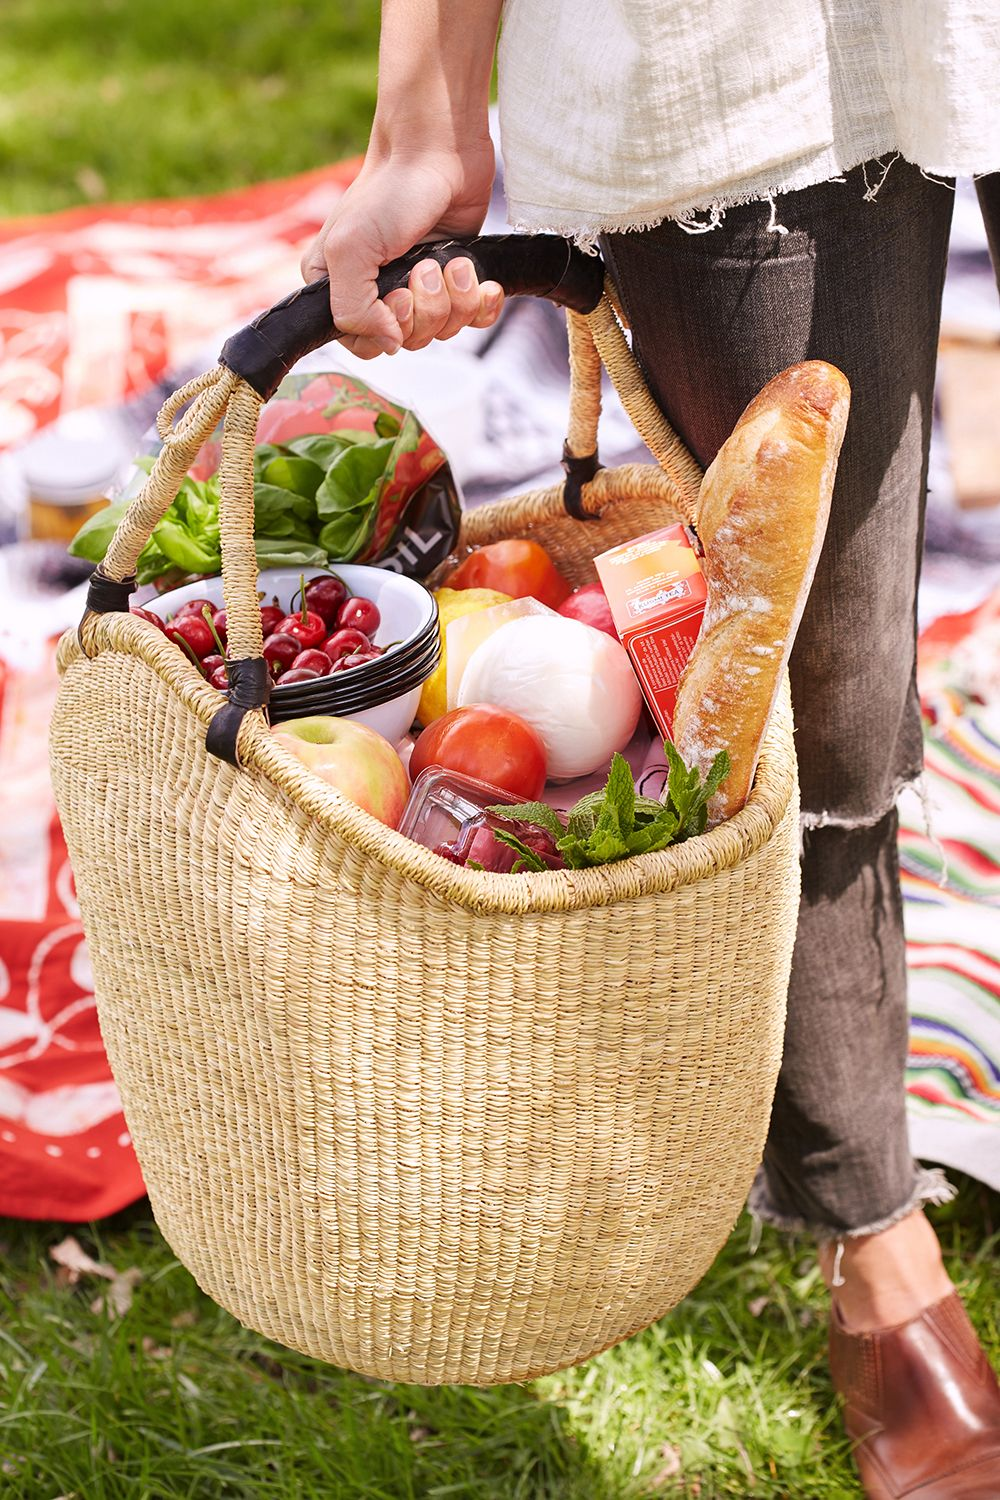 Picnic Basket Food : Bread and cheese picnic essentials weekend vibes